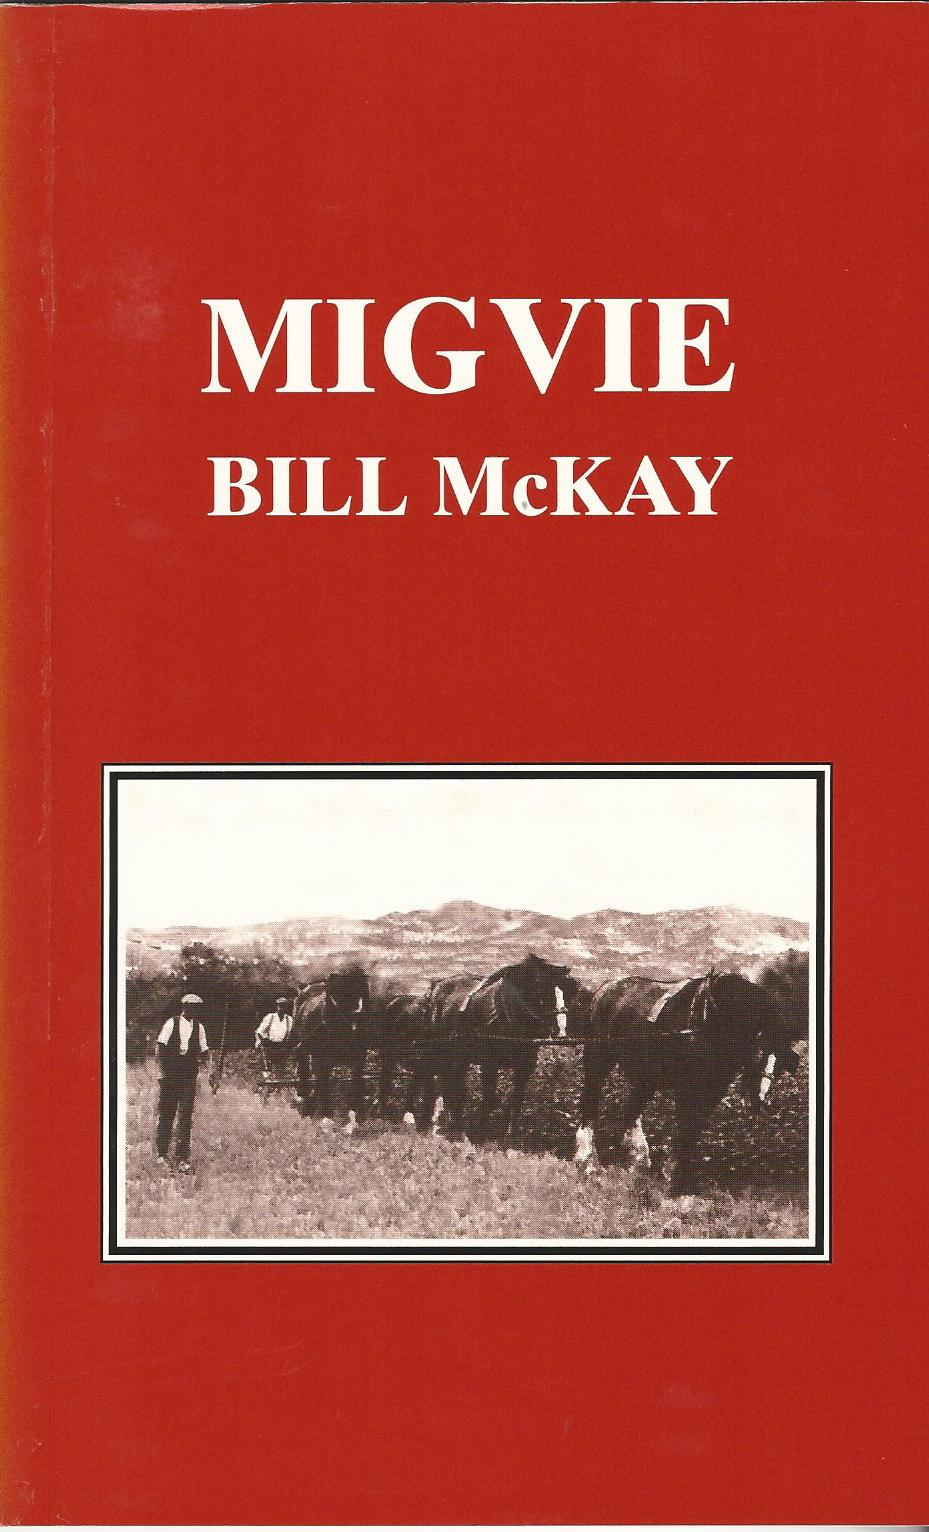 Image for Migvie (Farm Names)